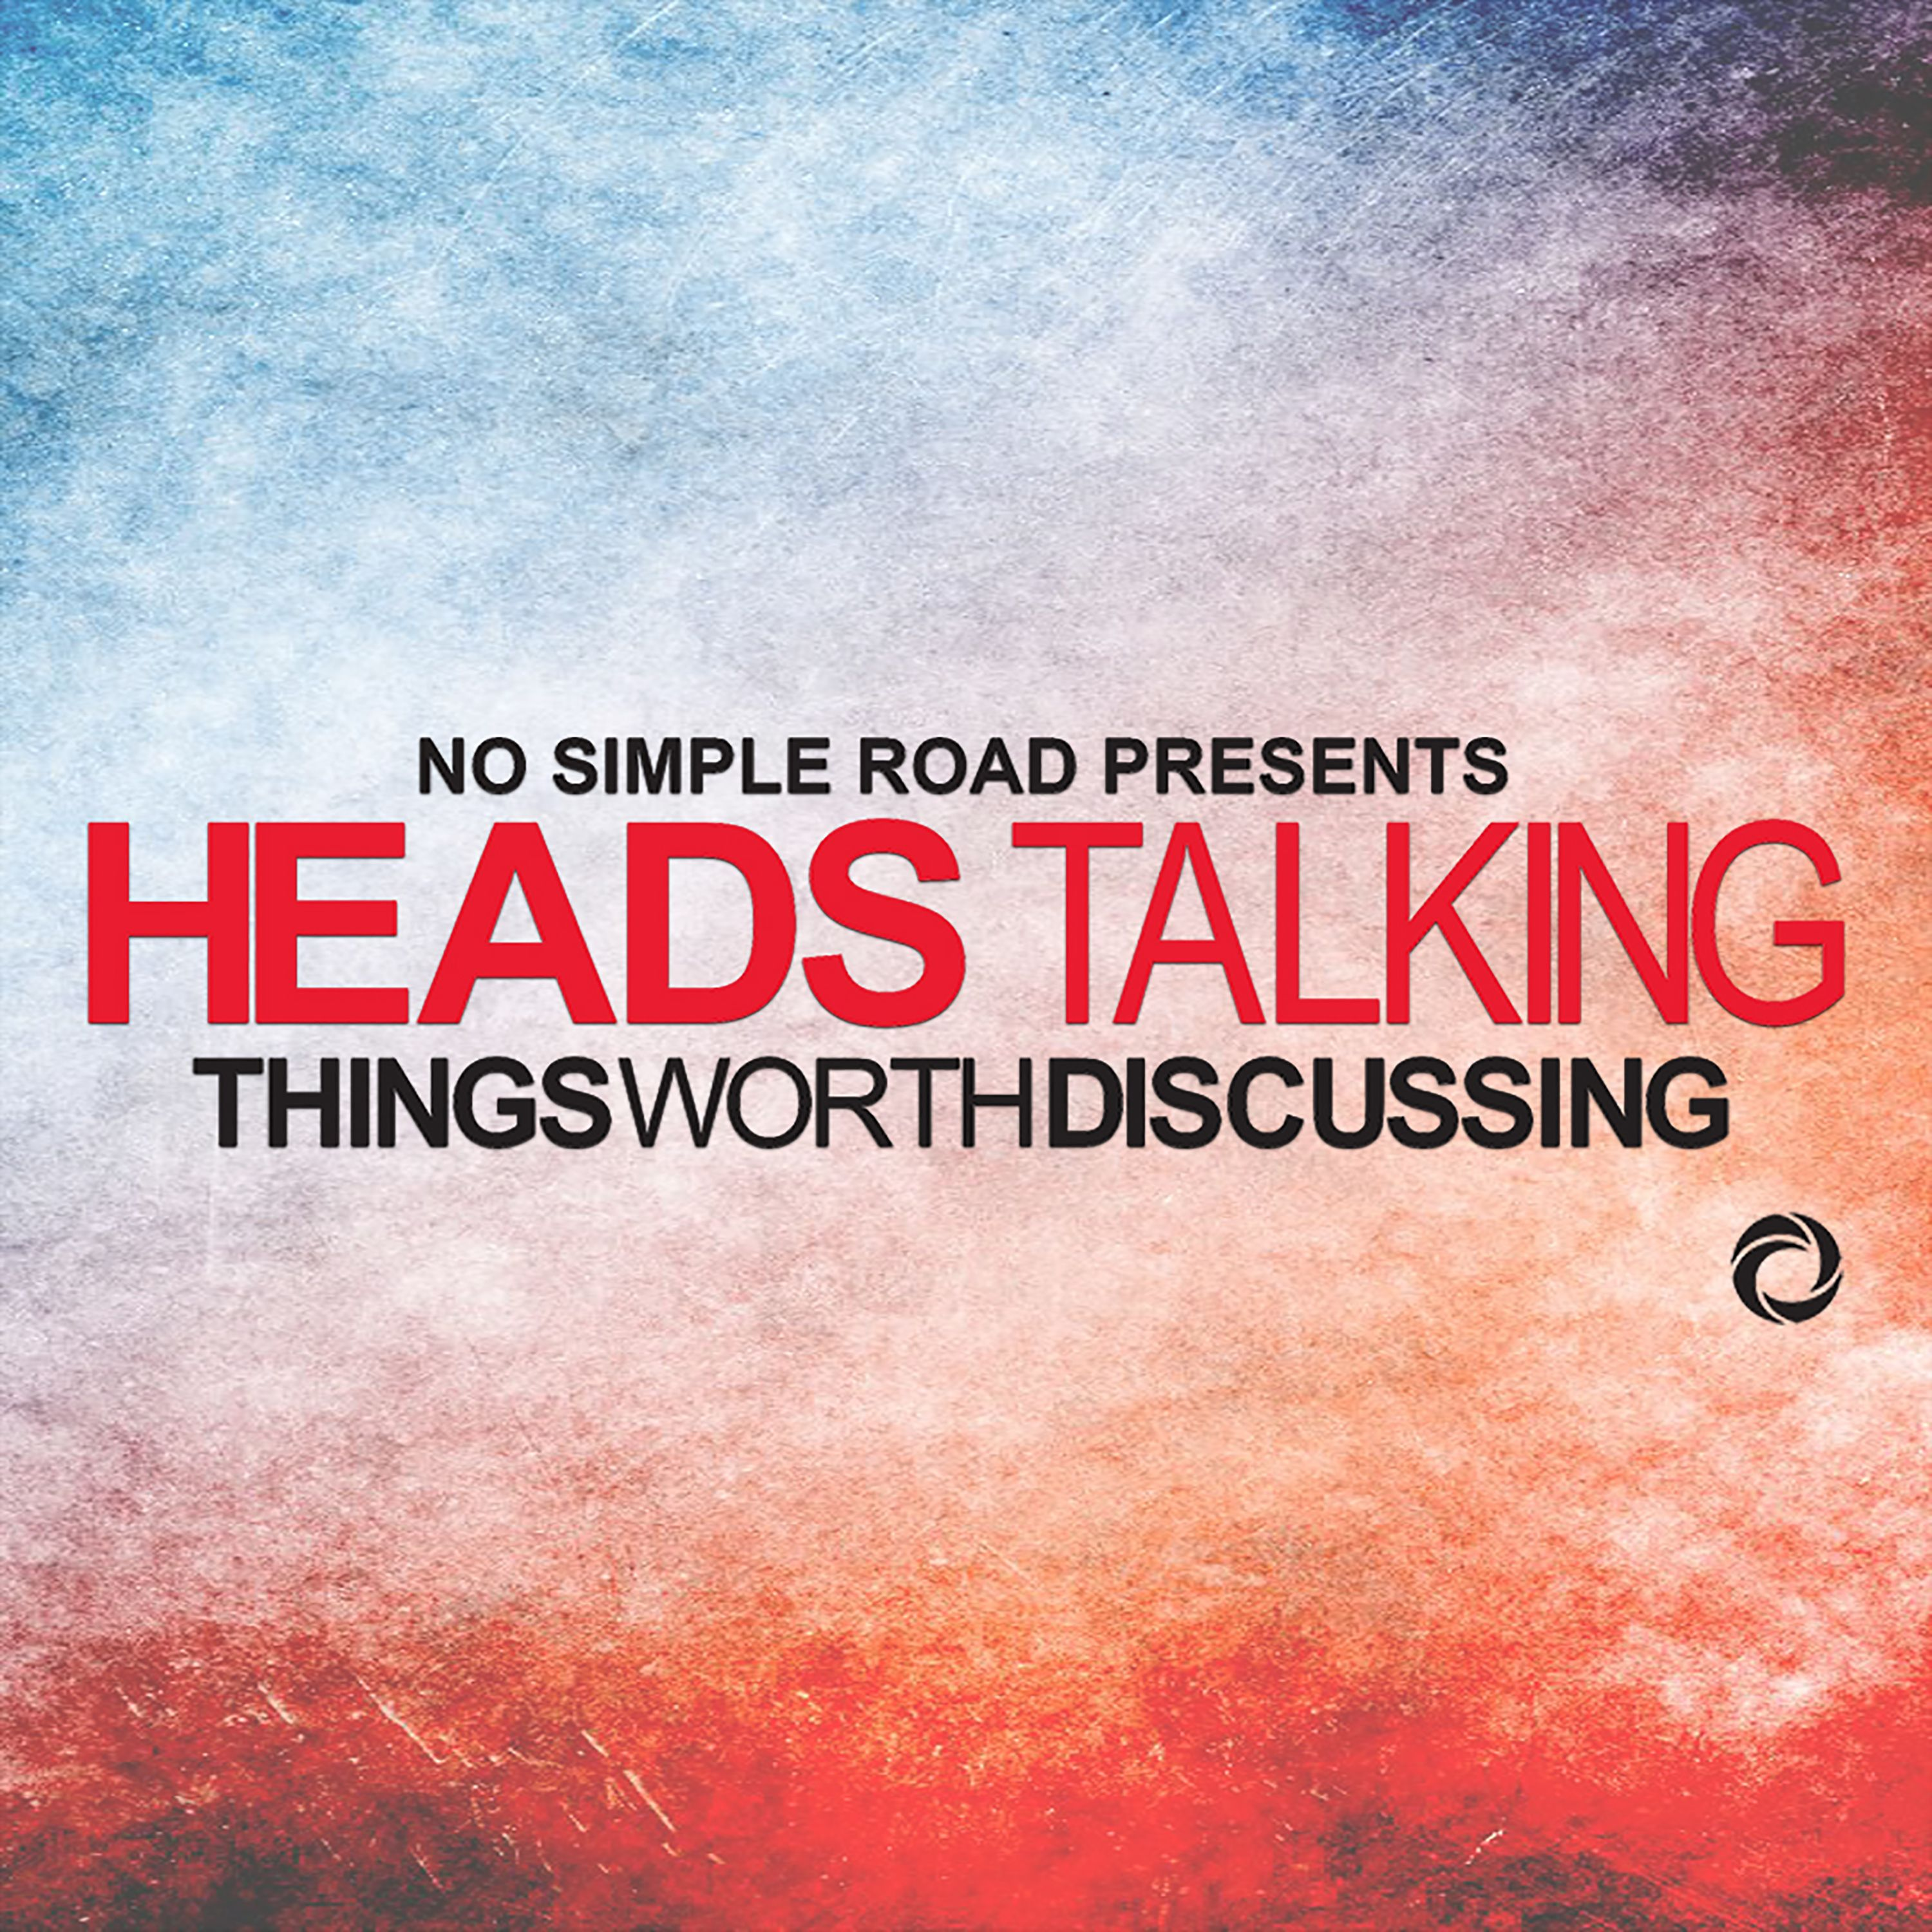 Heads Talking - Just Exactly Perfect With Alex (Nola Deadhead)